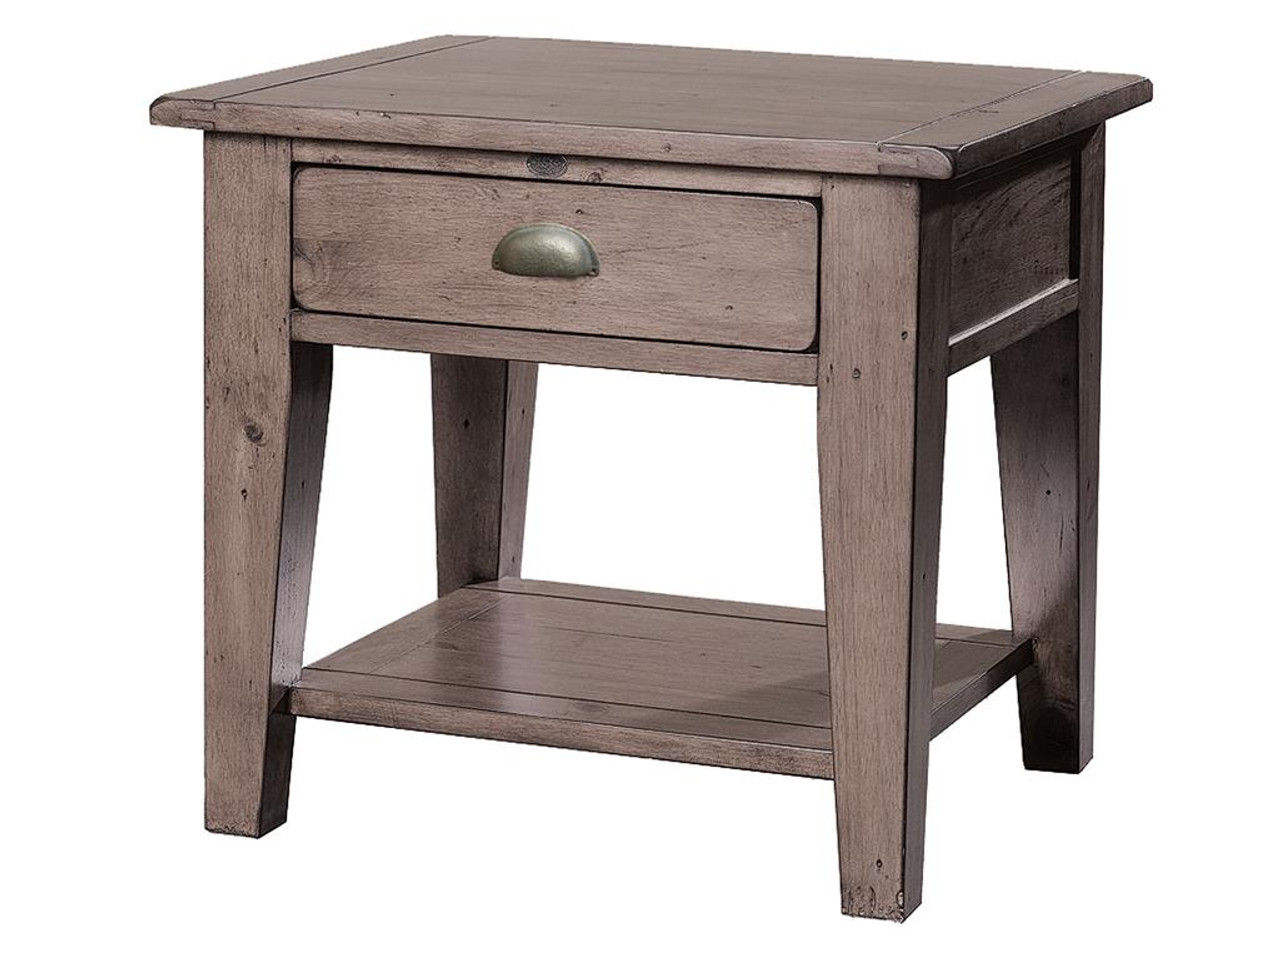 Rustic Solid Wood 11 Drawer Rectangular Pedestal Home: Coastal Solid Wood Rustic Side Table With 1 Drawer